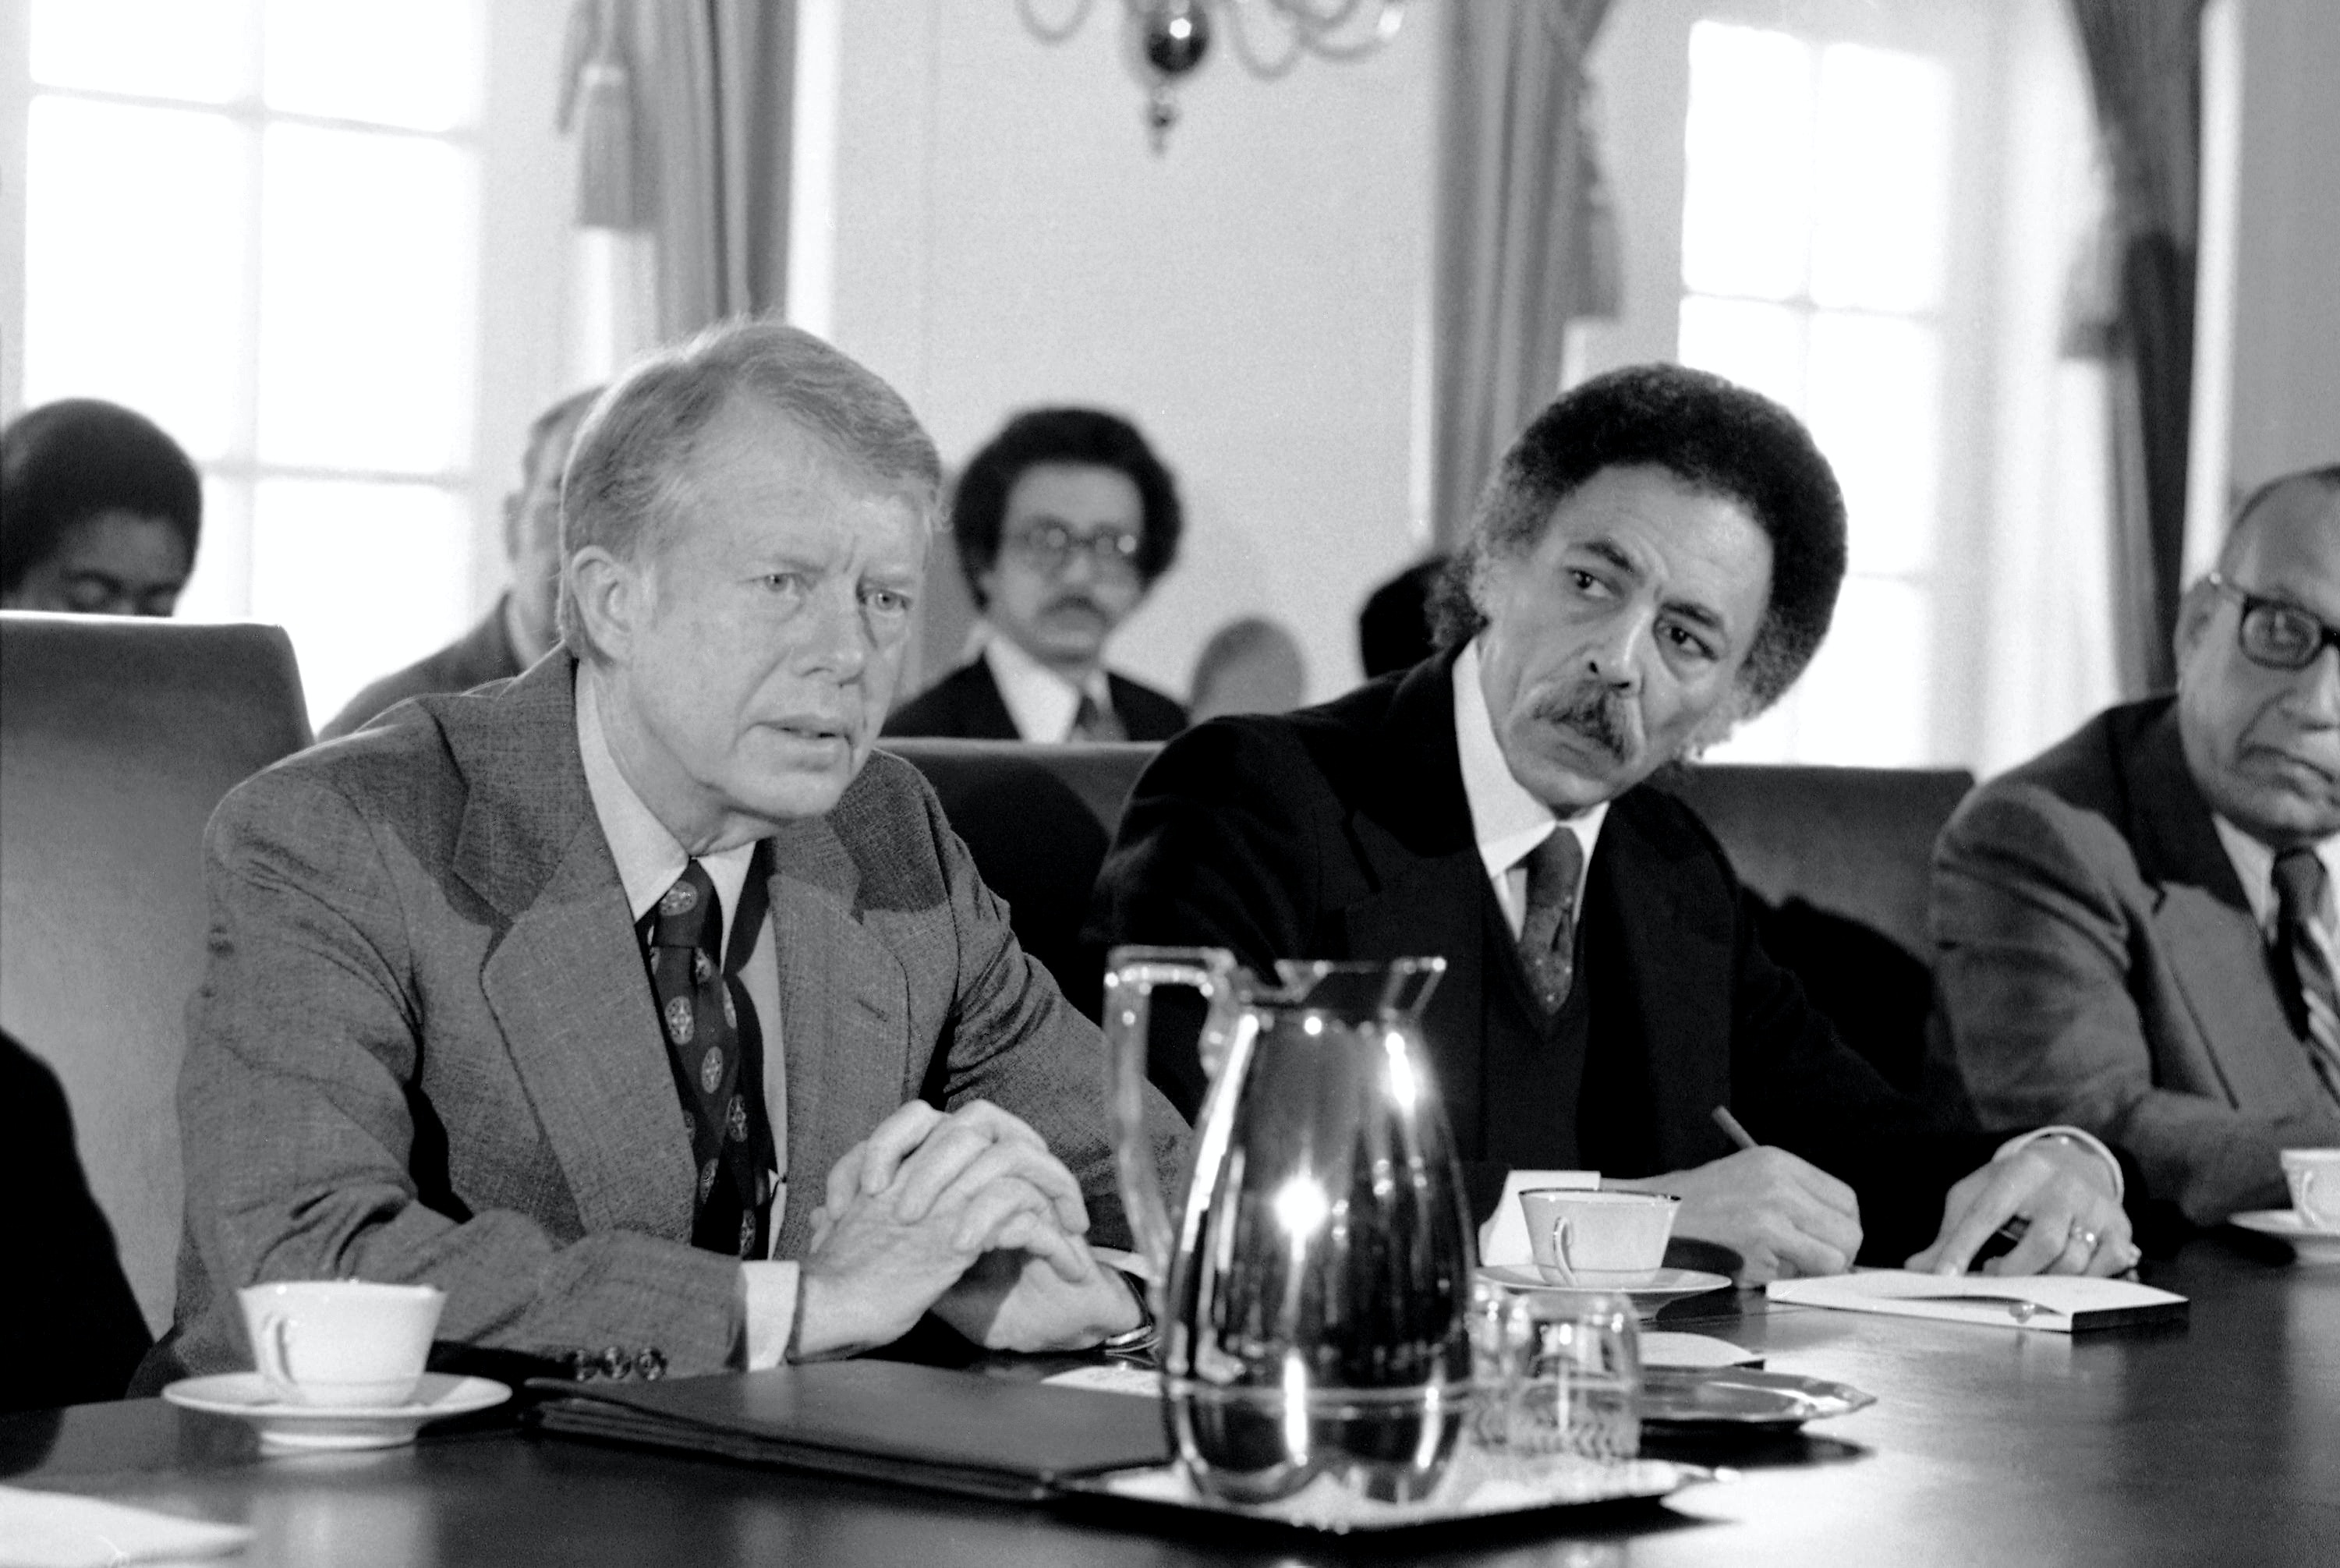 President Jimmy Carter meets with some of the members of the Congressional Black Caucus in Washington on Wednesday, Feb. 28, 1979. Rep. Ronald V. Dellums, D-Calif., is seated beside Carter. (AP Photo/Harvey Georges)